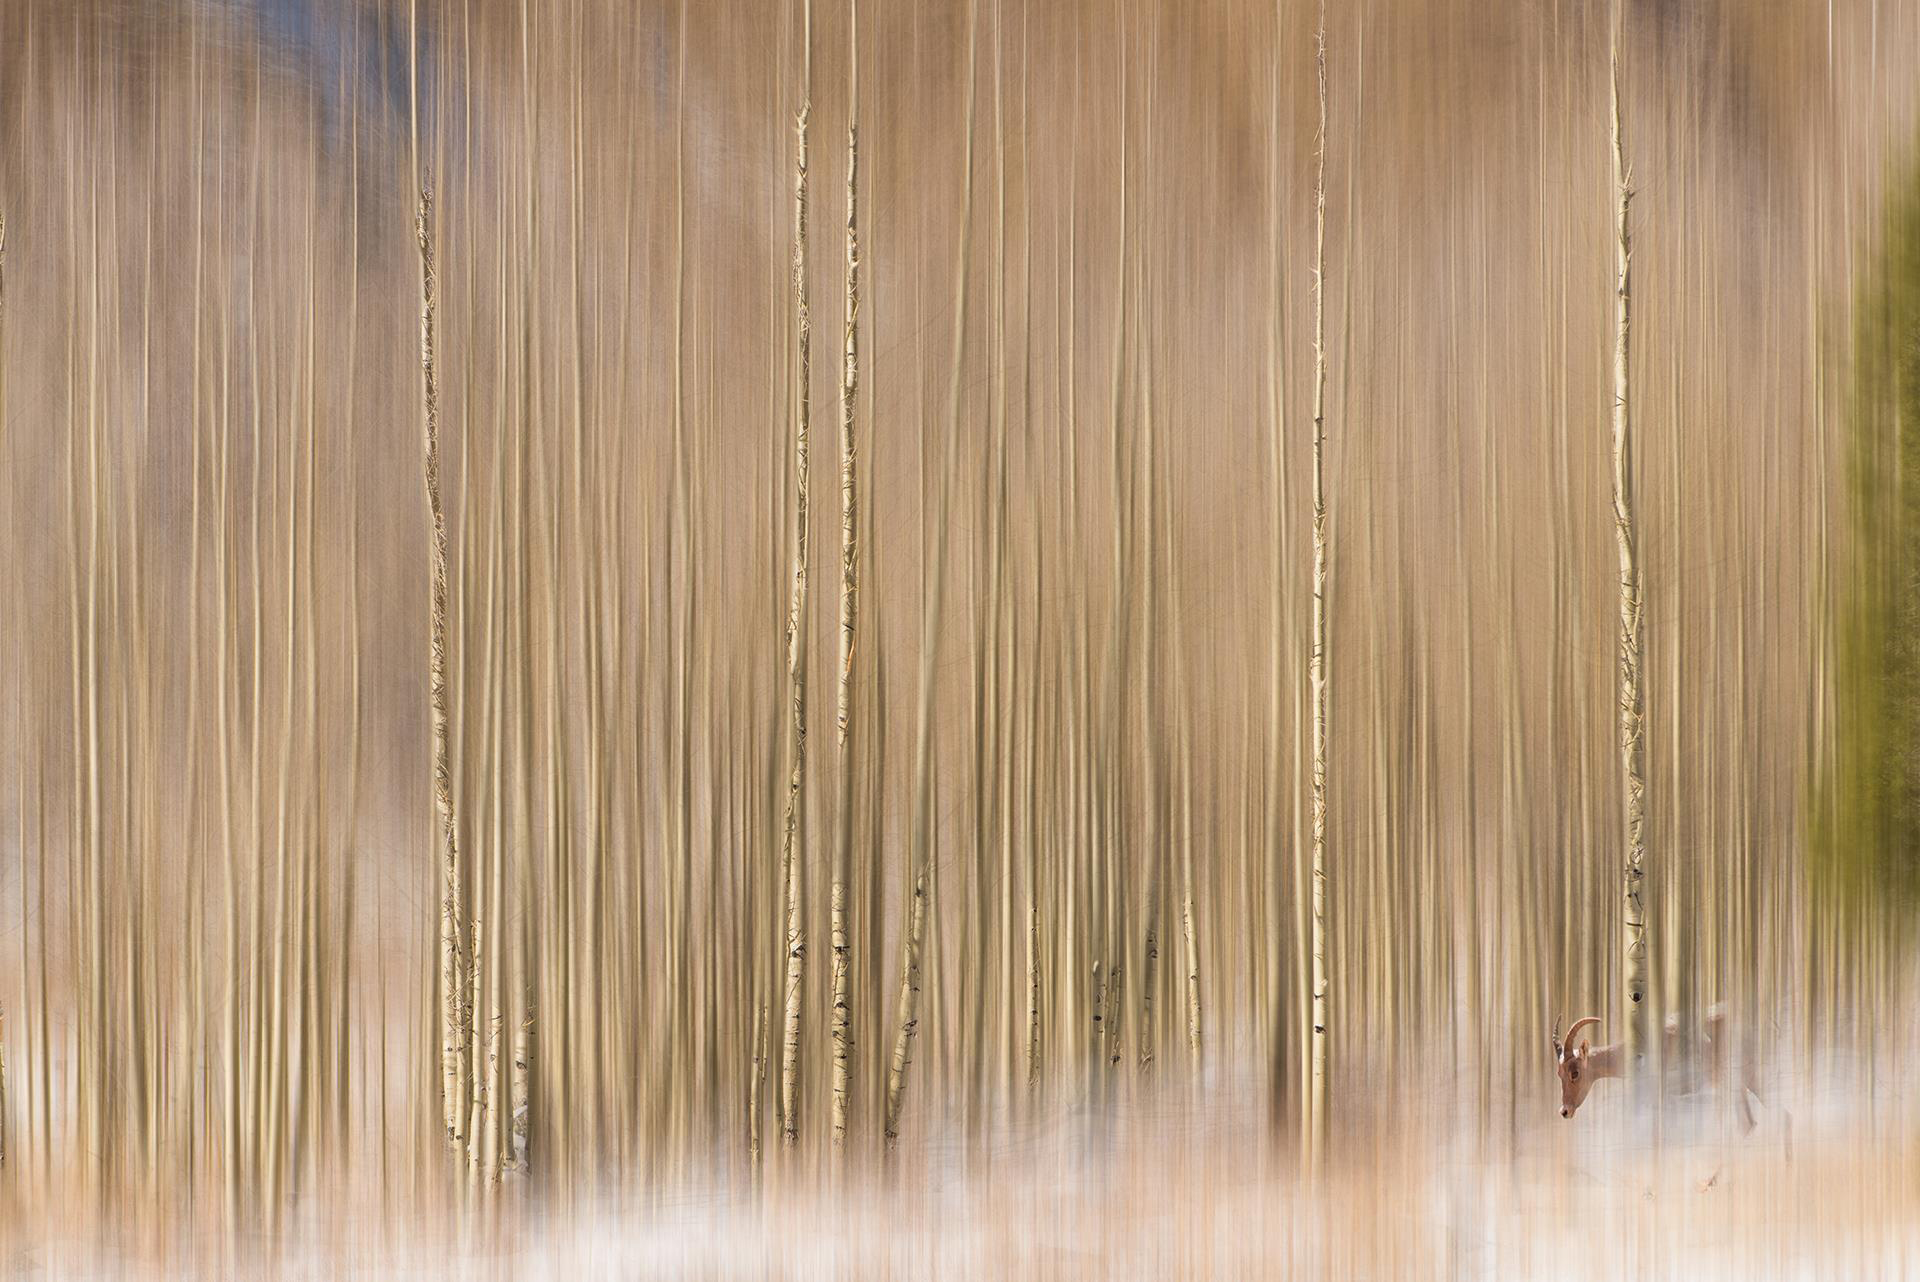 Aspens in Aspen and a Bighorn Sheep by Ana Phelps